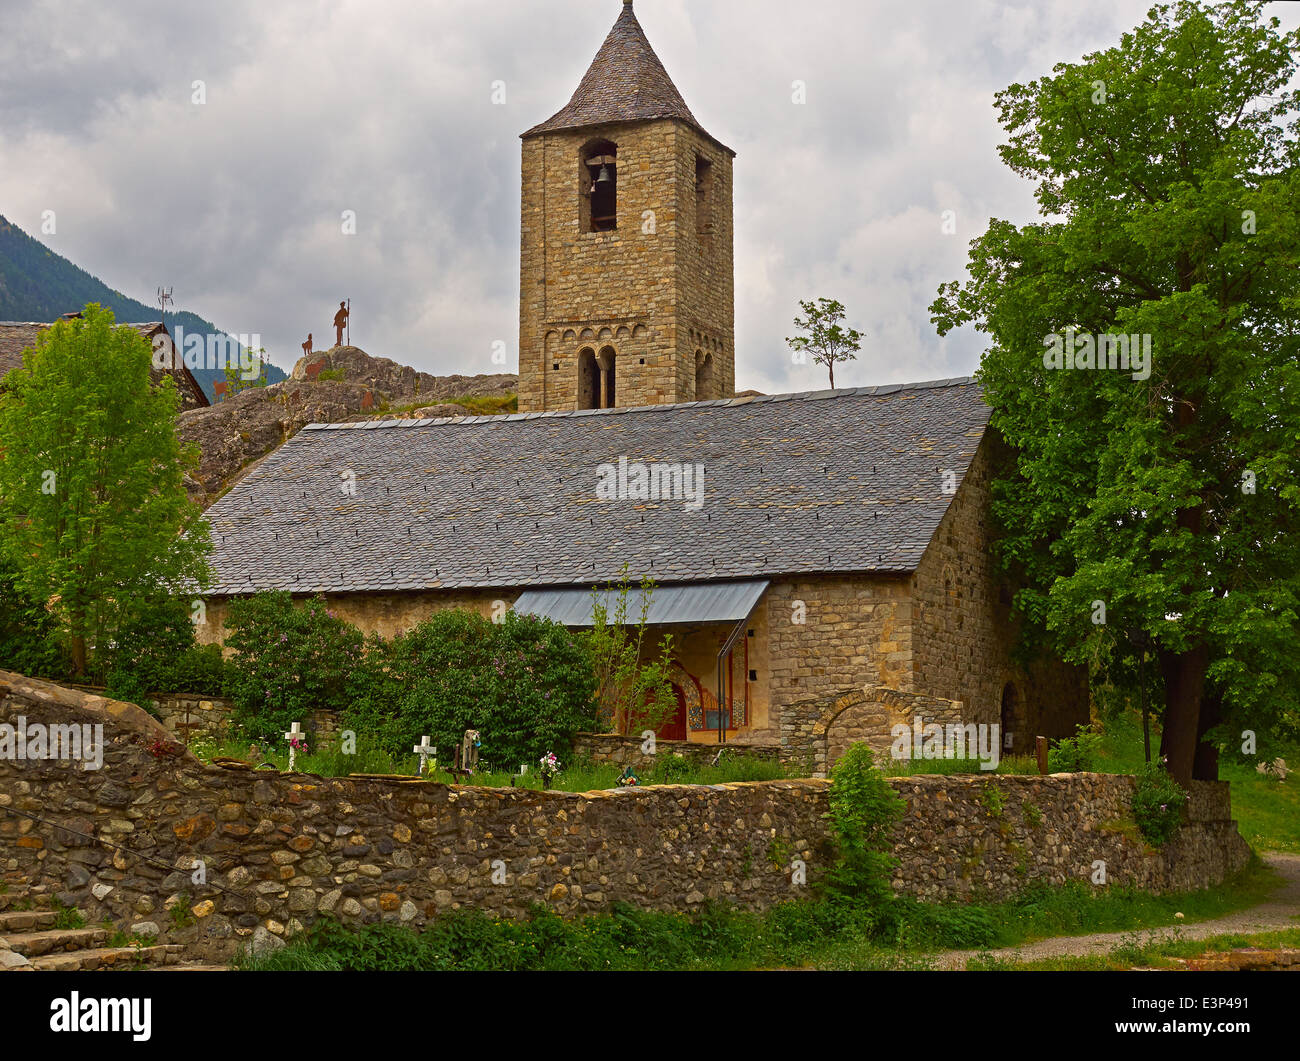 Church of Saint Joan de Boi in the Vall de Boi, Spain. One of 9 Early Romanesque churches in a remote valley - Stock Image